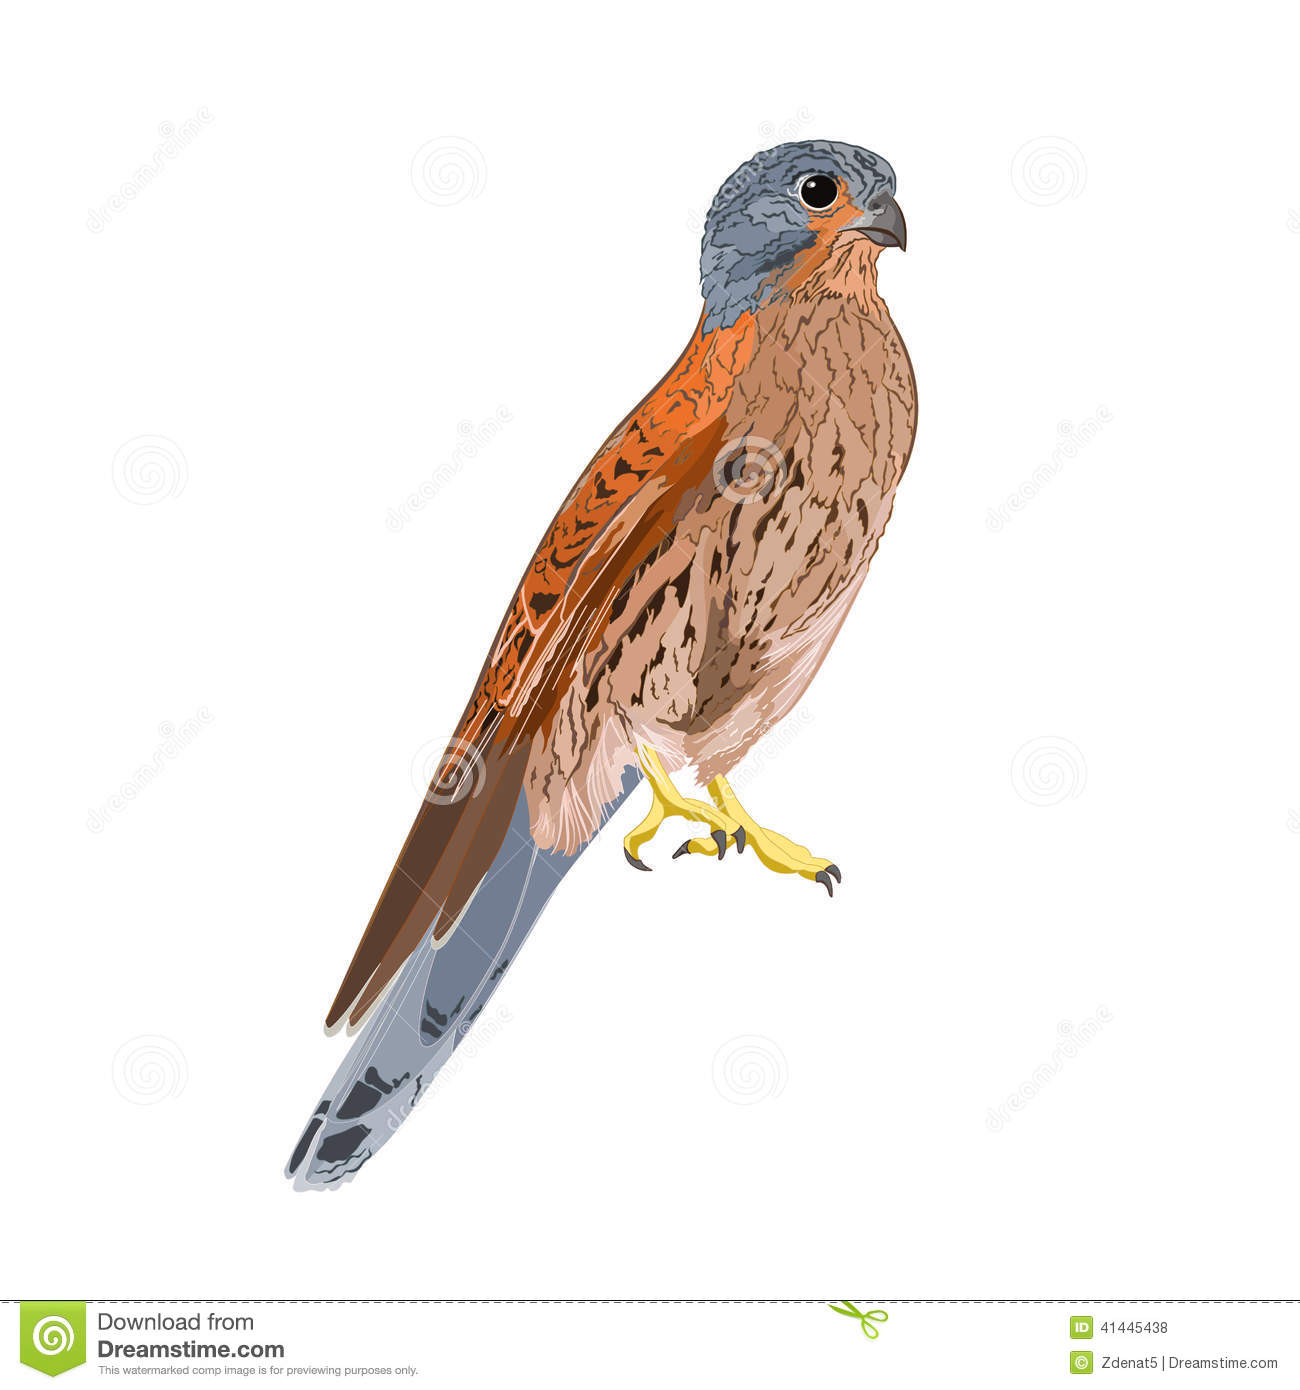 Kestrel clipart #3, Download drawings